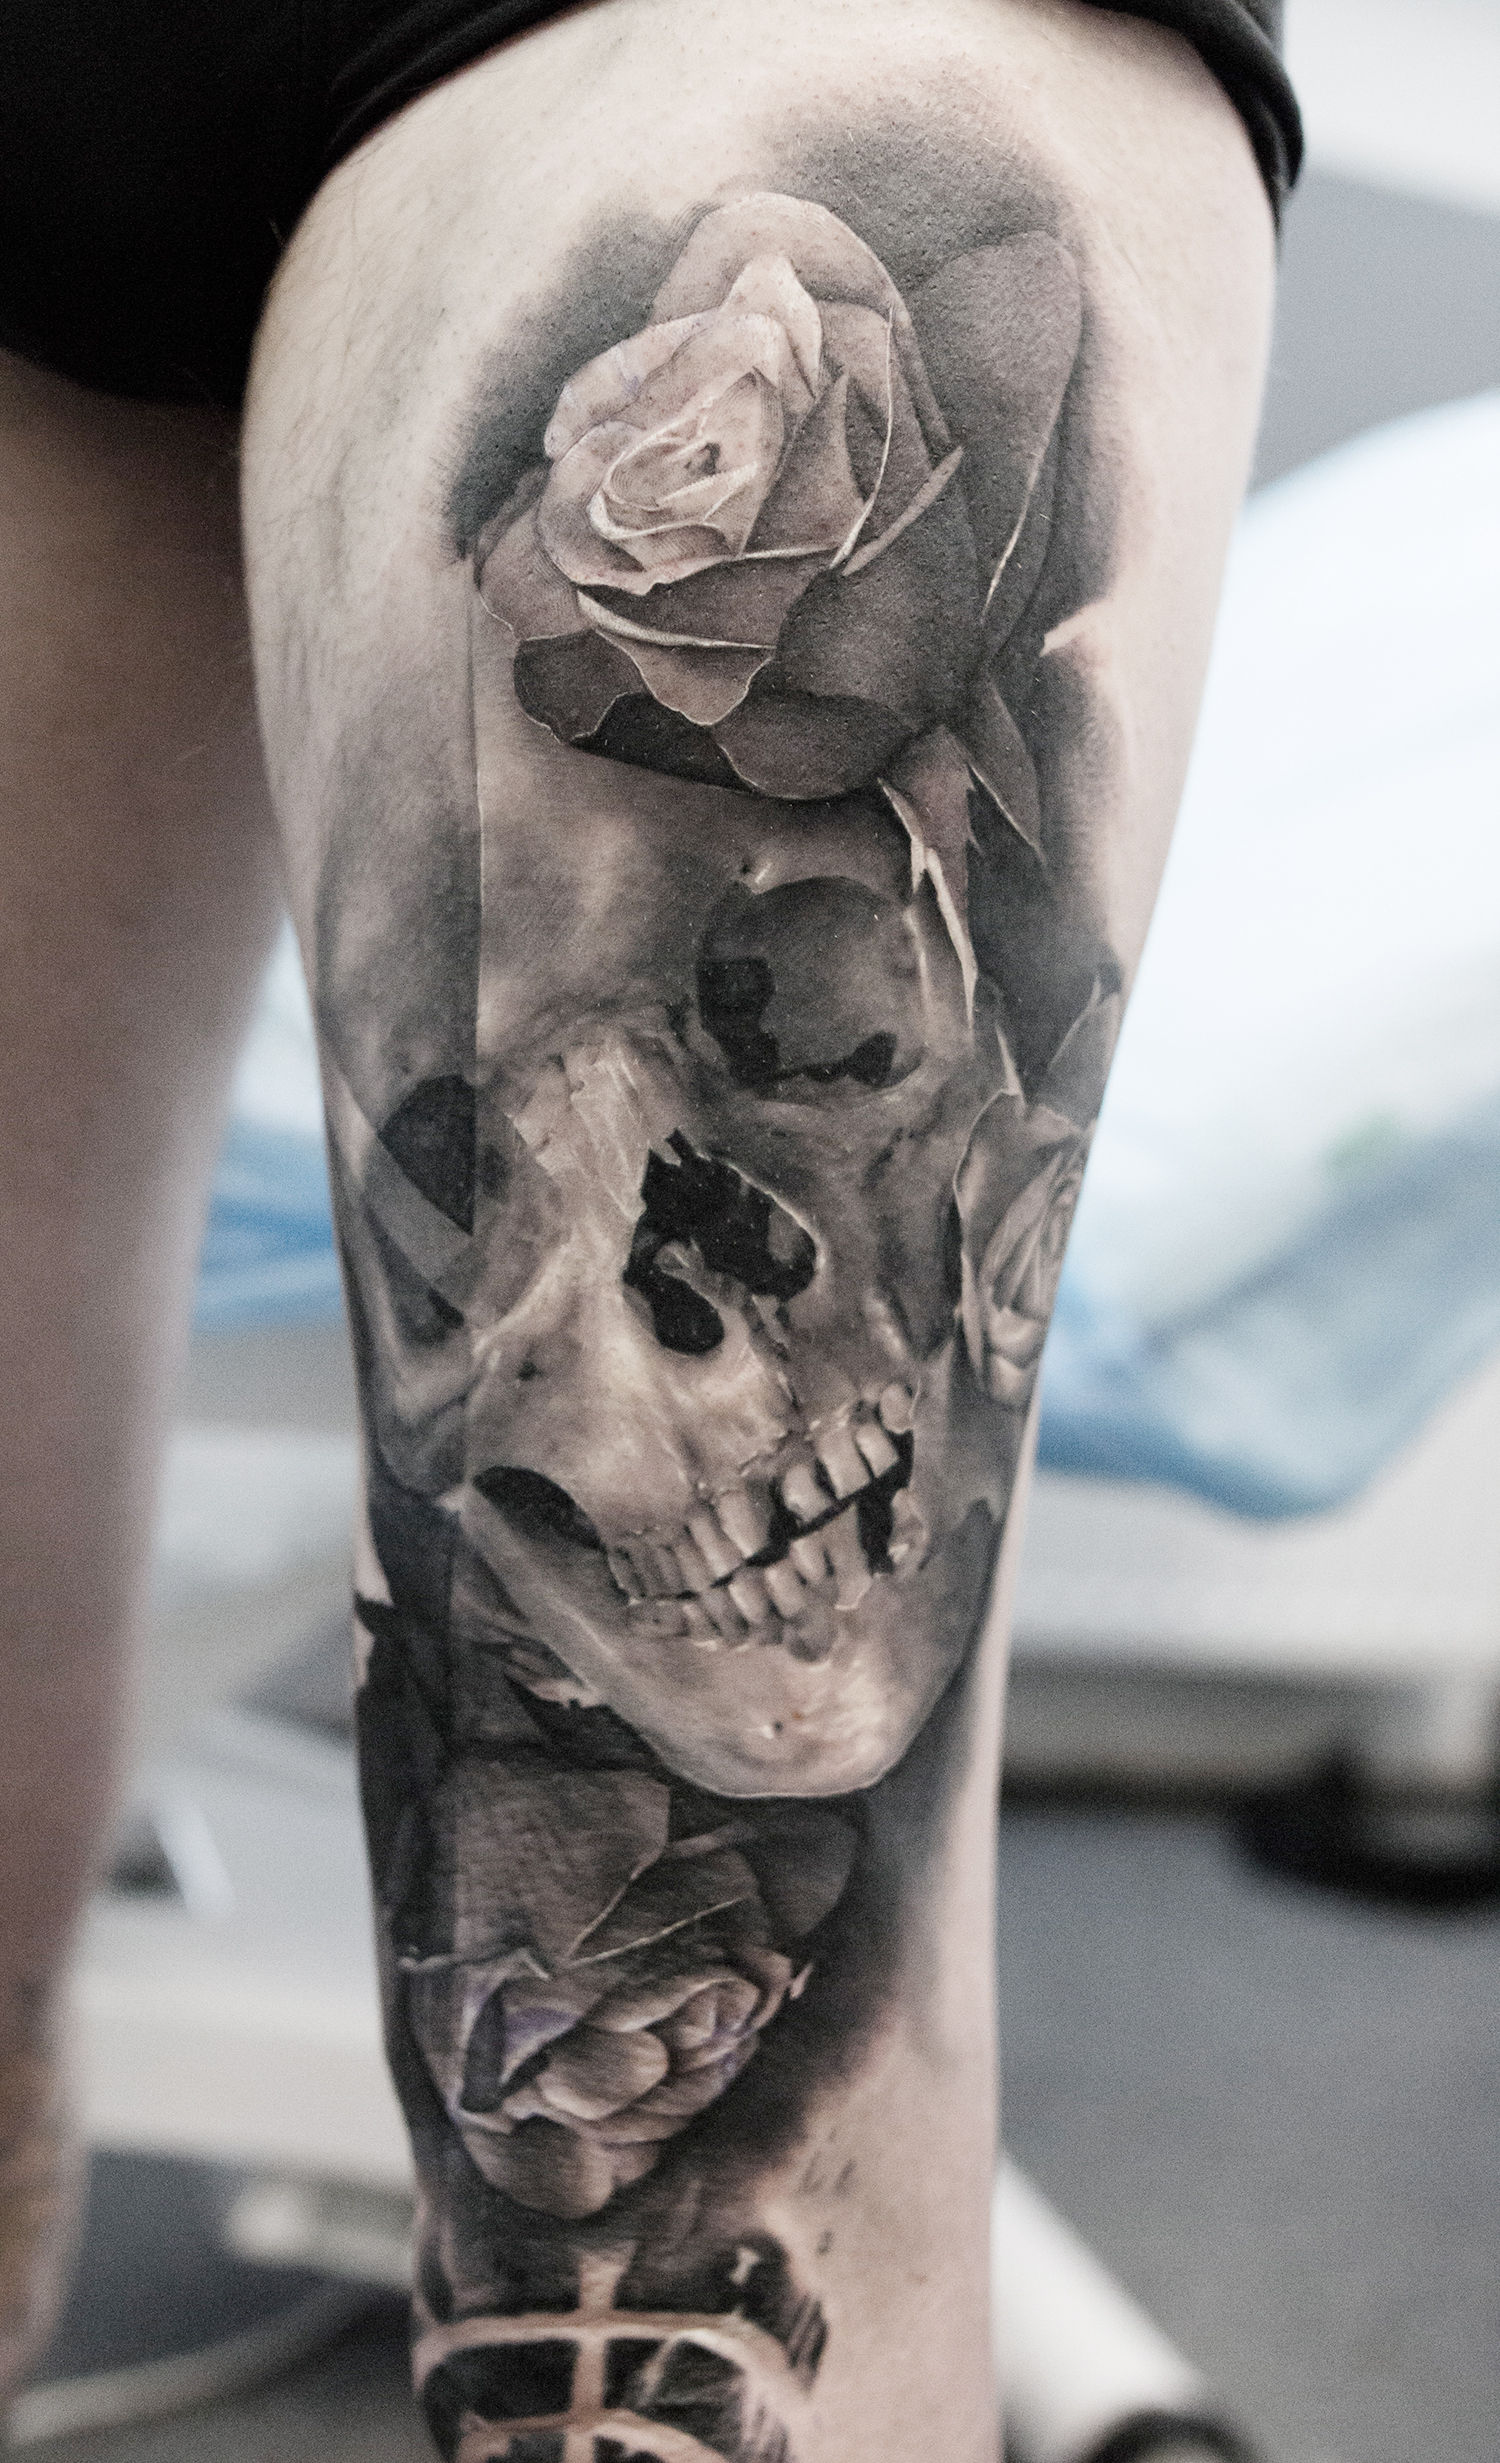 skull and rose tattoo on leg, black and grey tattoos